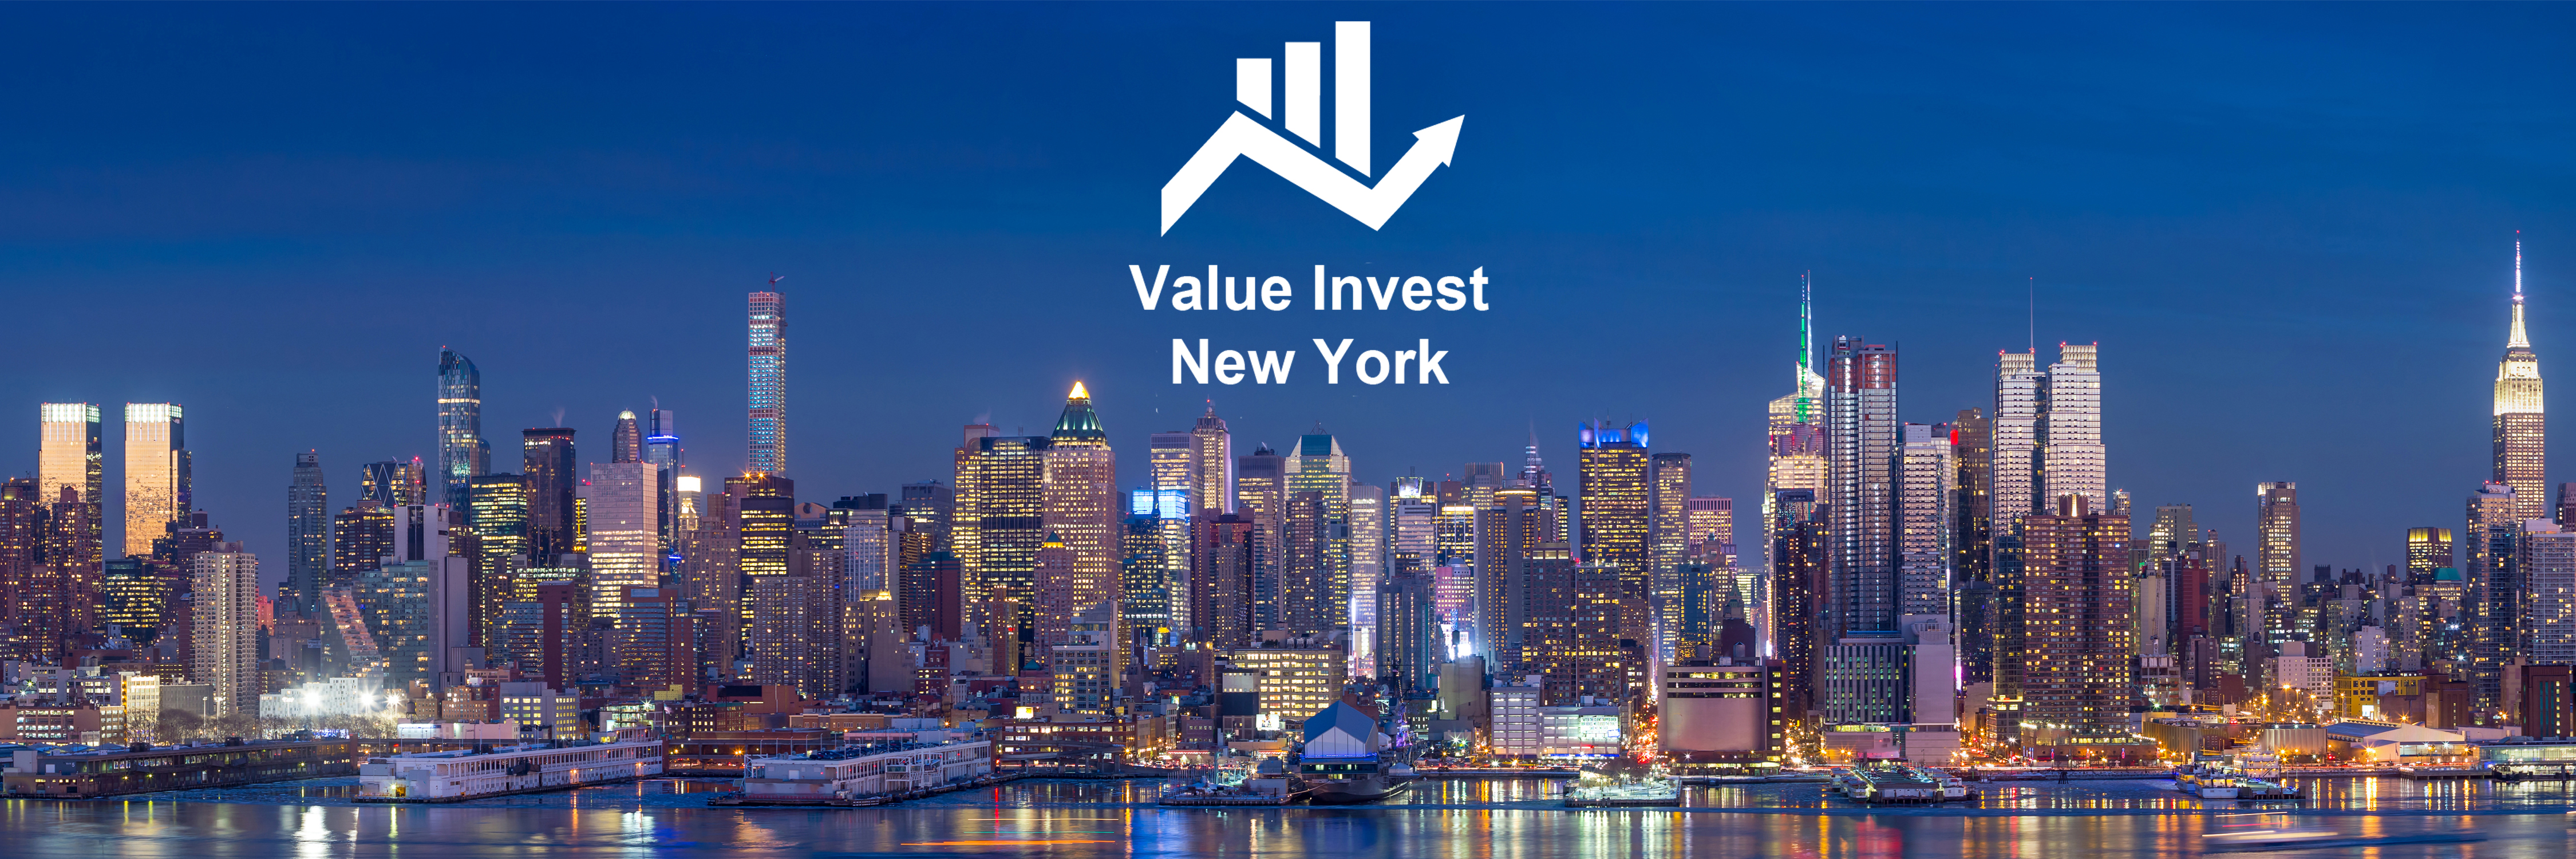 Value Investor Conference New York